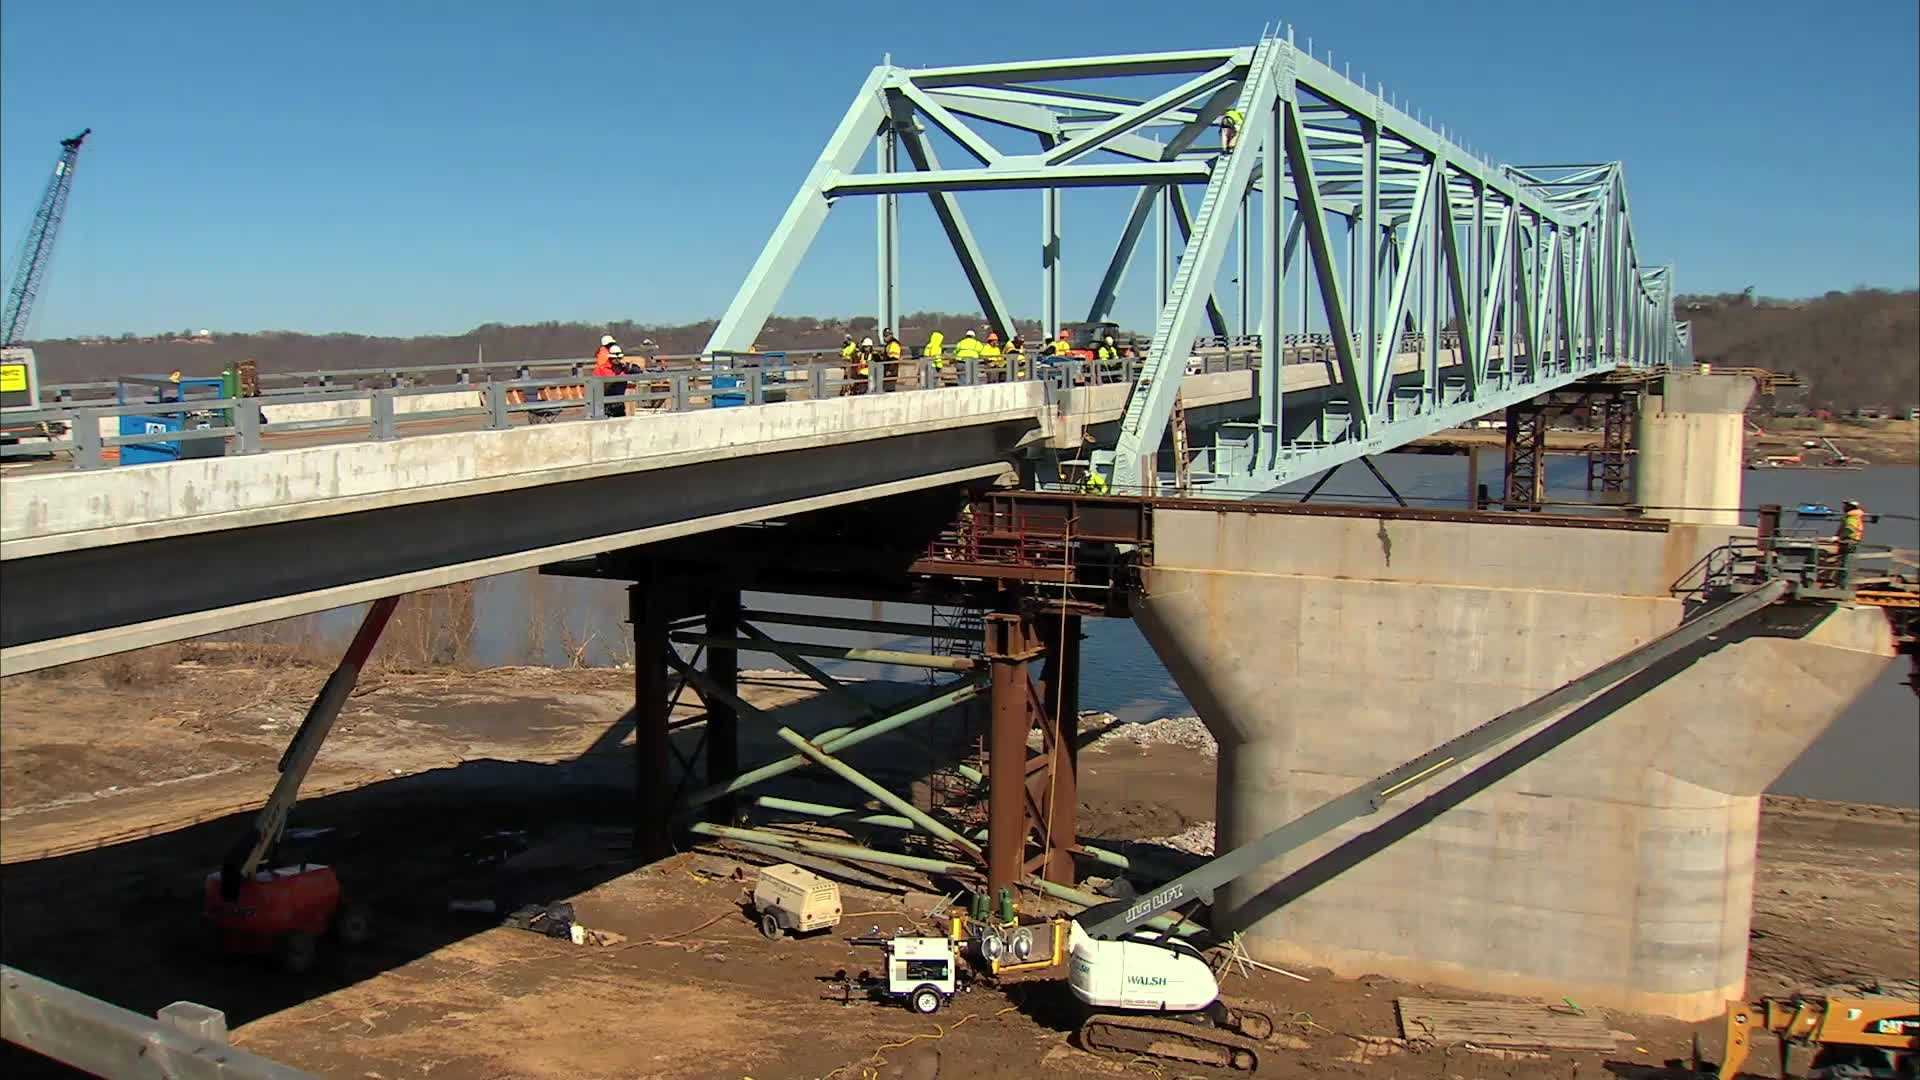 A 100-foot concrete section of the Kentucky side of the Milton-Madison Bridge slid into place Thursday morning. This timelapse video shows the less than 2-hour process from two angles.